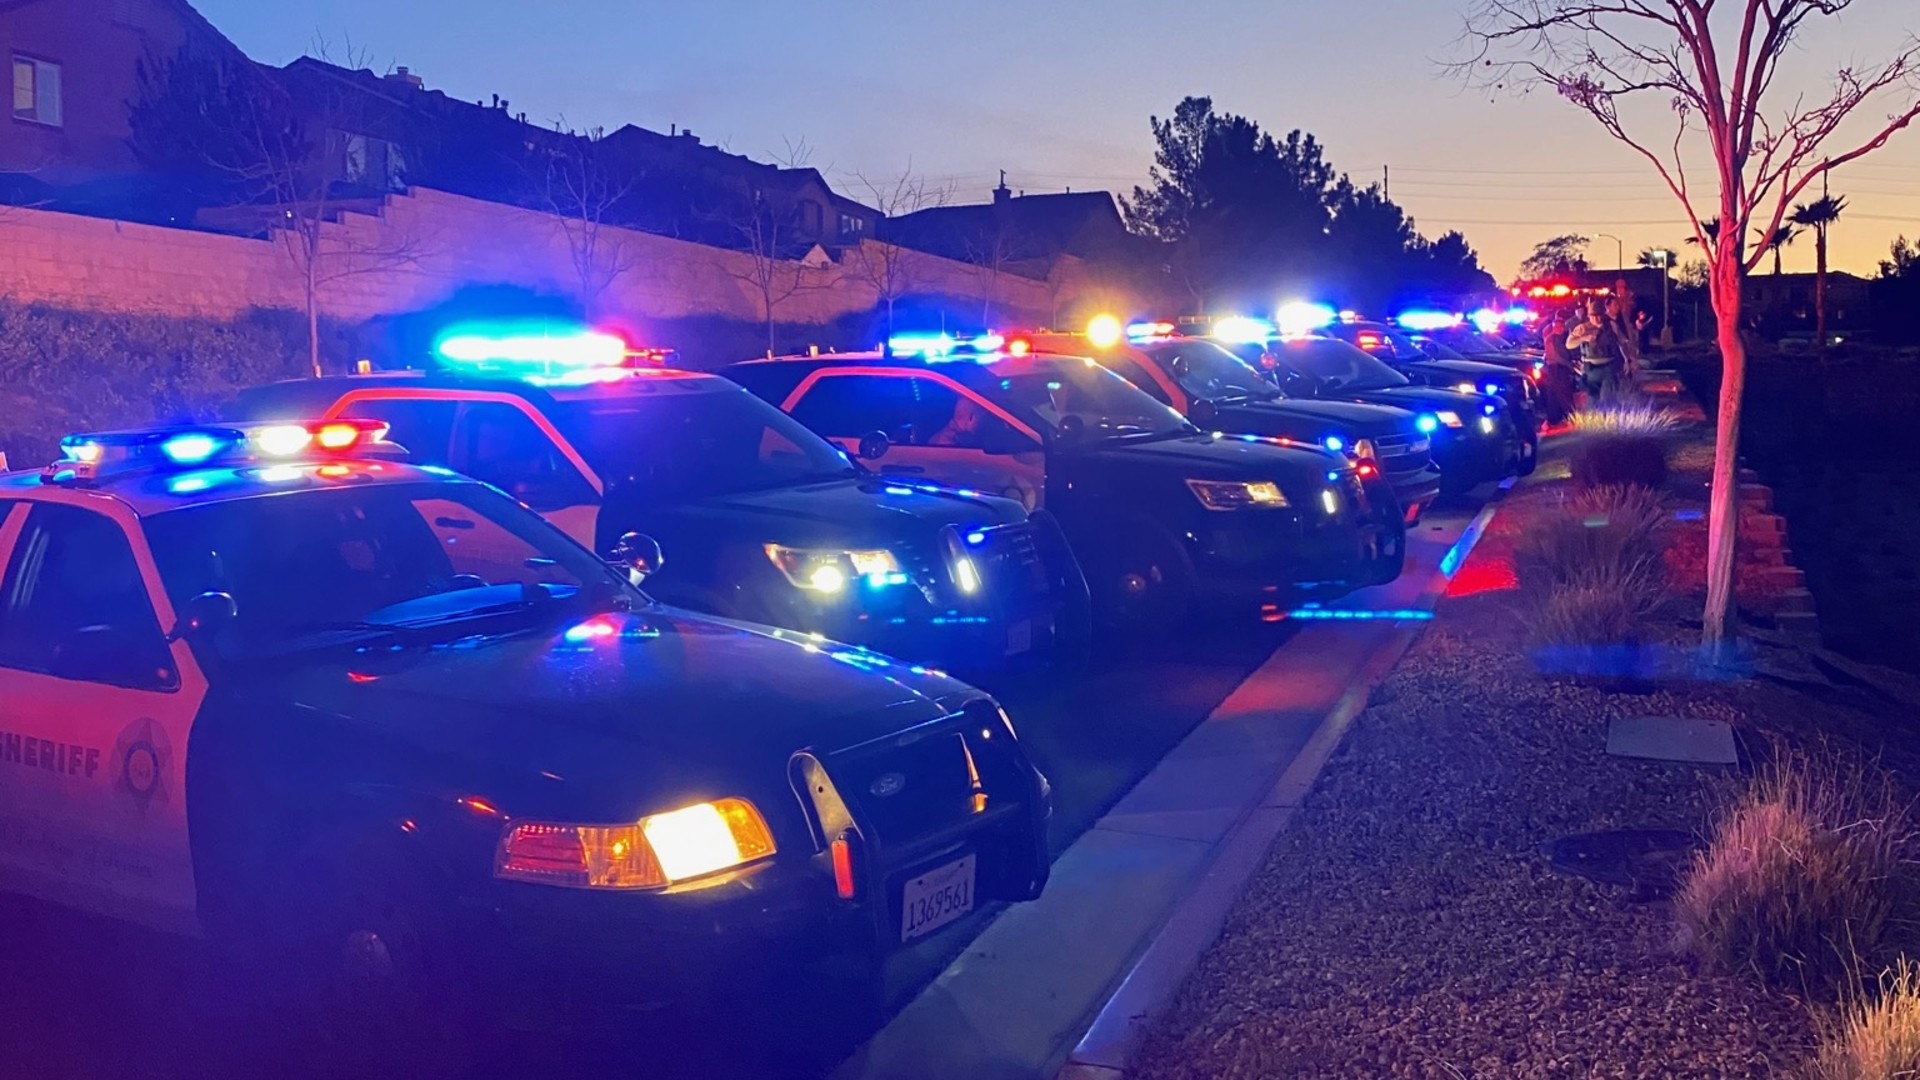 Los Angeles County Sheriff's Deputies salute healthcare workers at the Antelope Valley Hospital in Lancaster on March 30, 2020. (LASD)